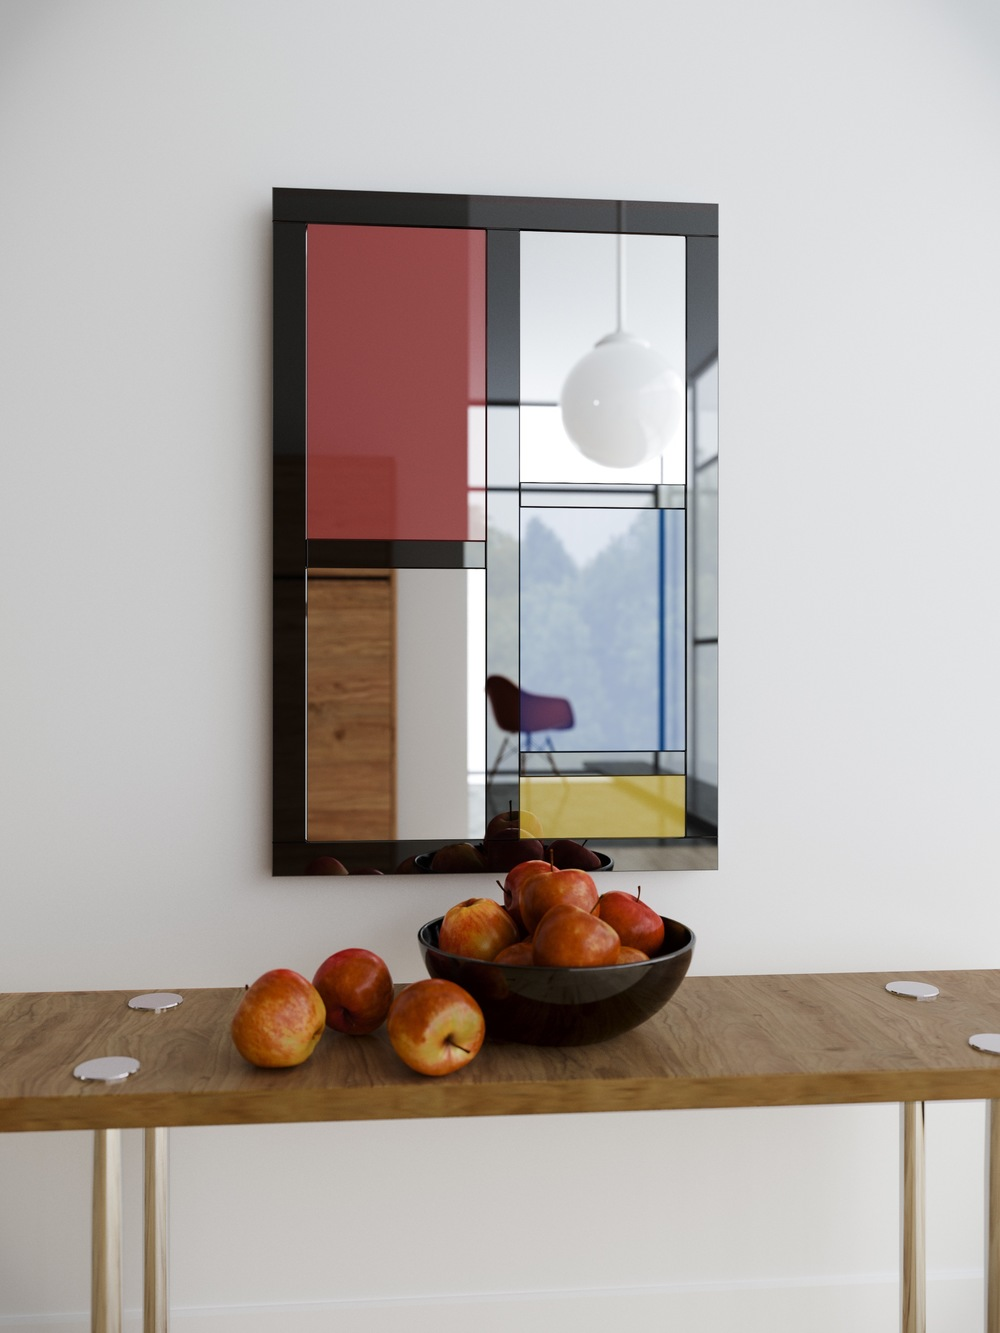 Mondrian inspired colorful wall mirror, photographed in residence outside of LA.